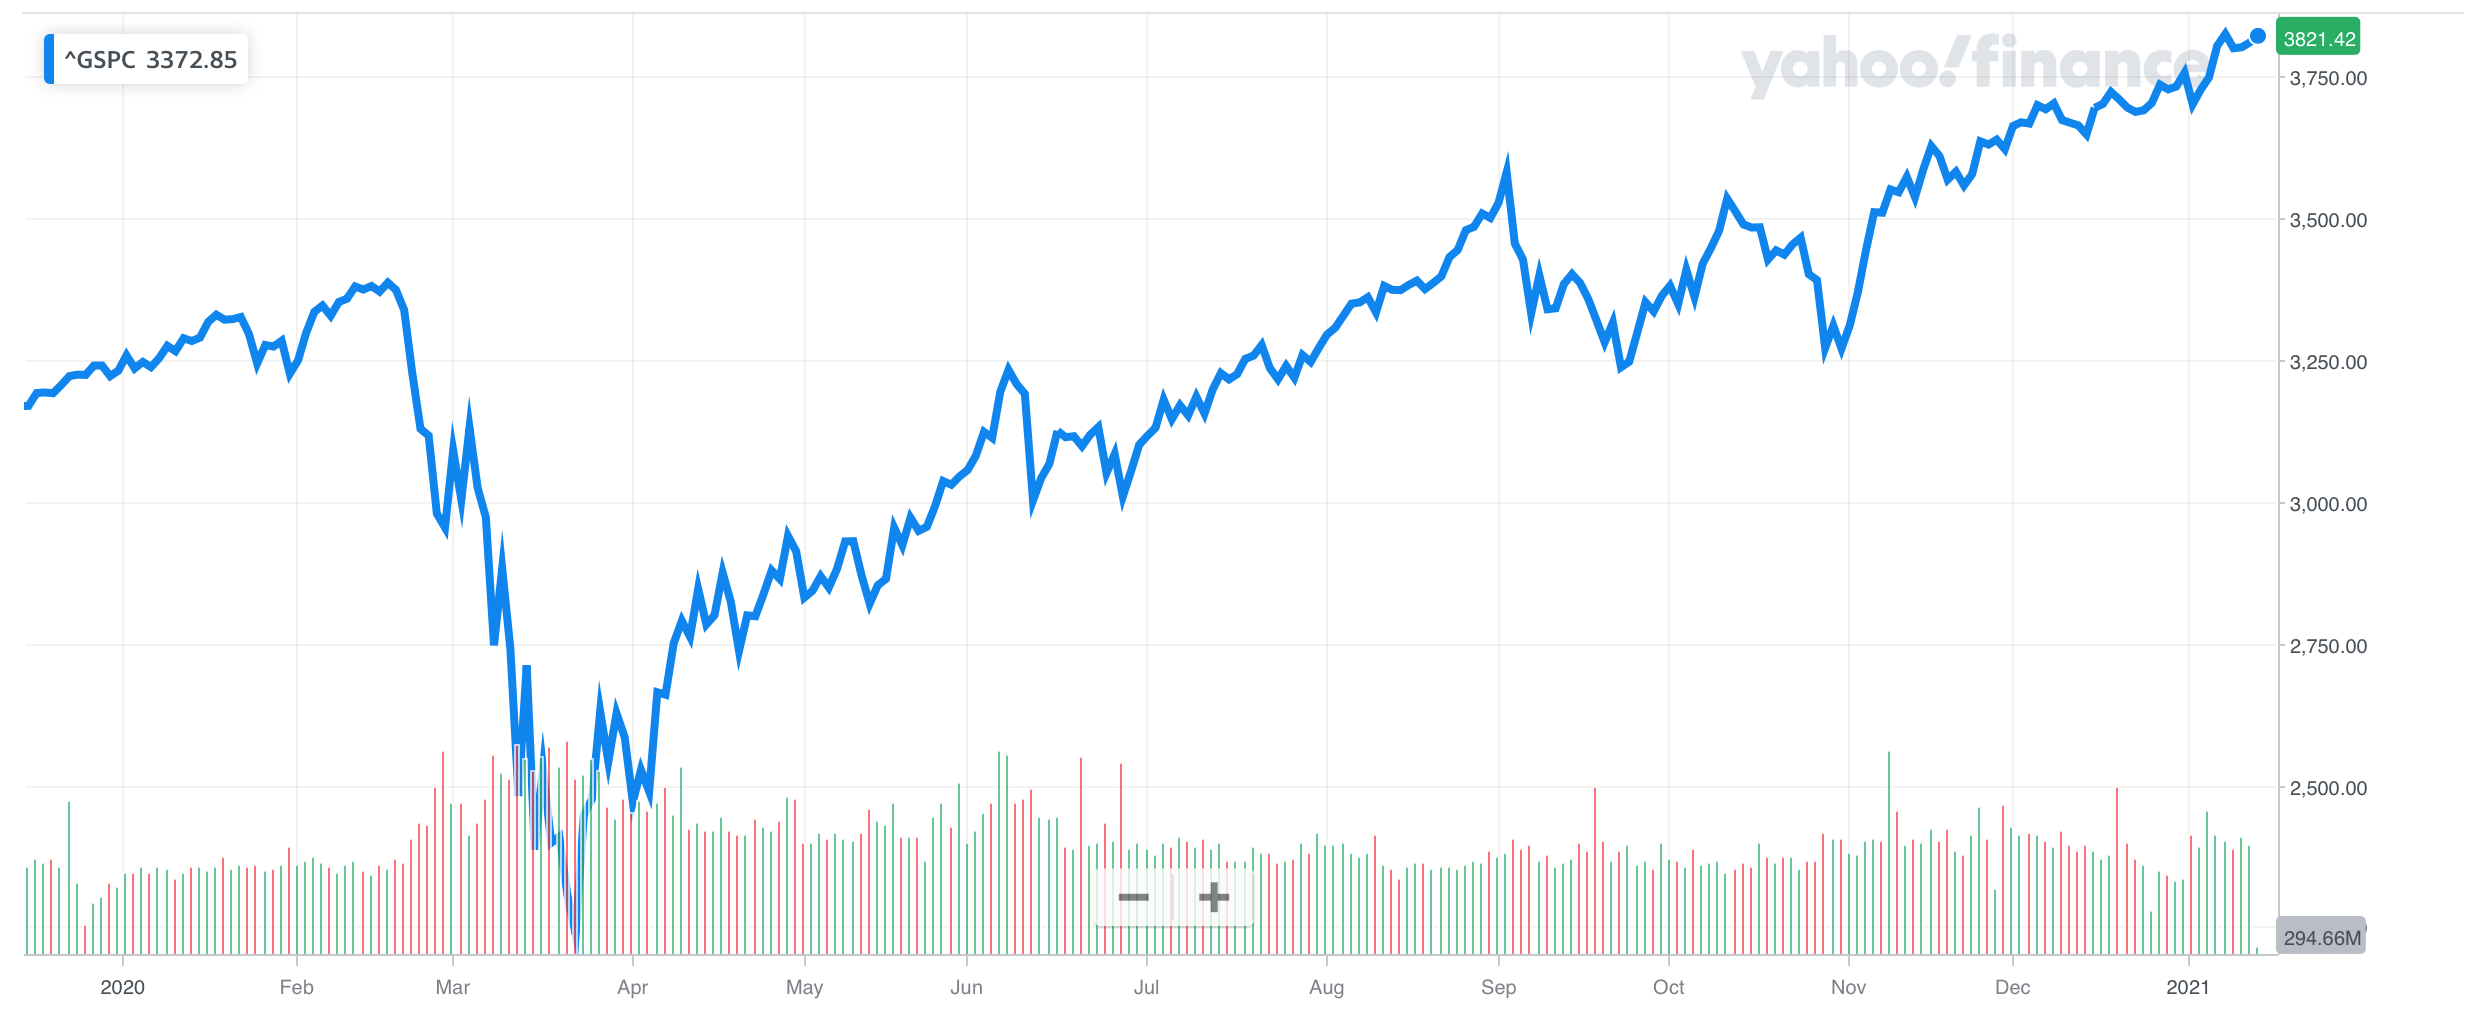 S&P 500 Index Performance in 2020 - Source: Yahoo Finance